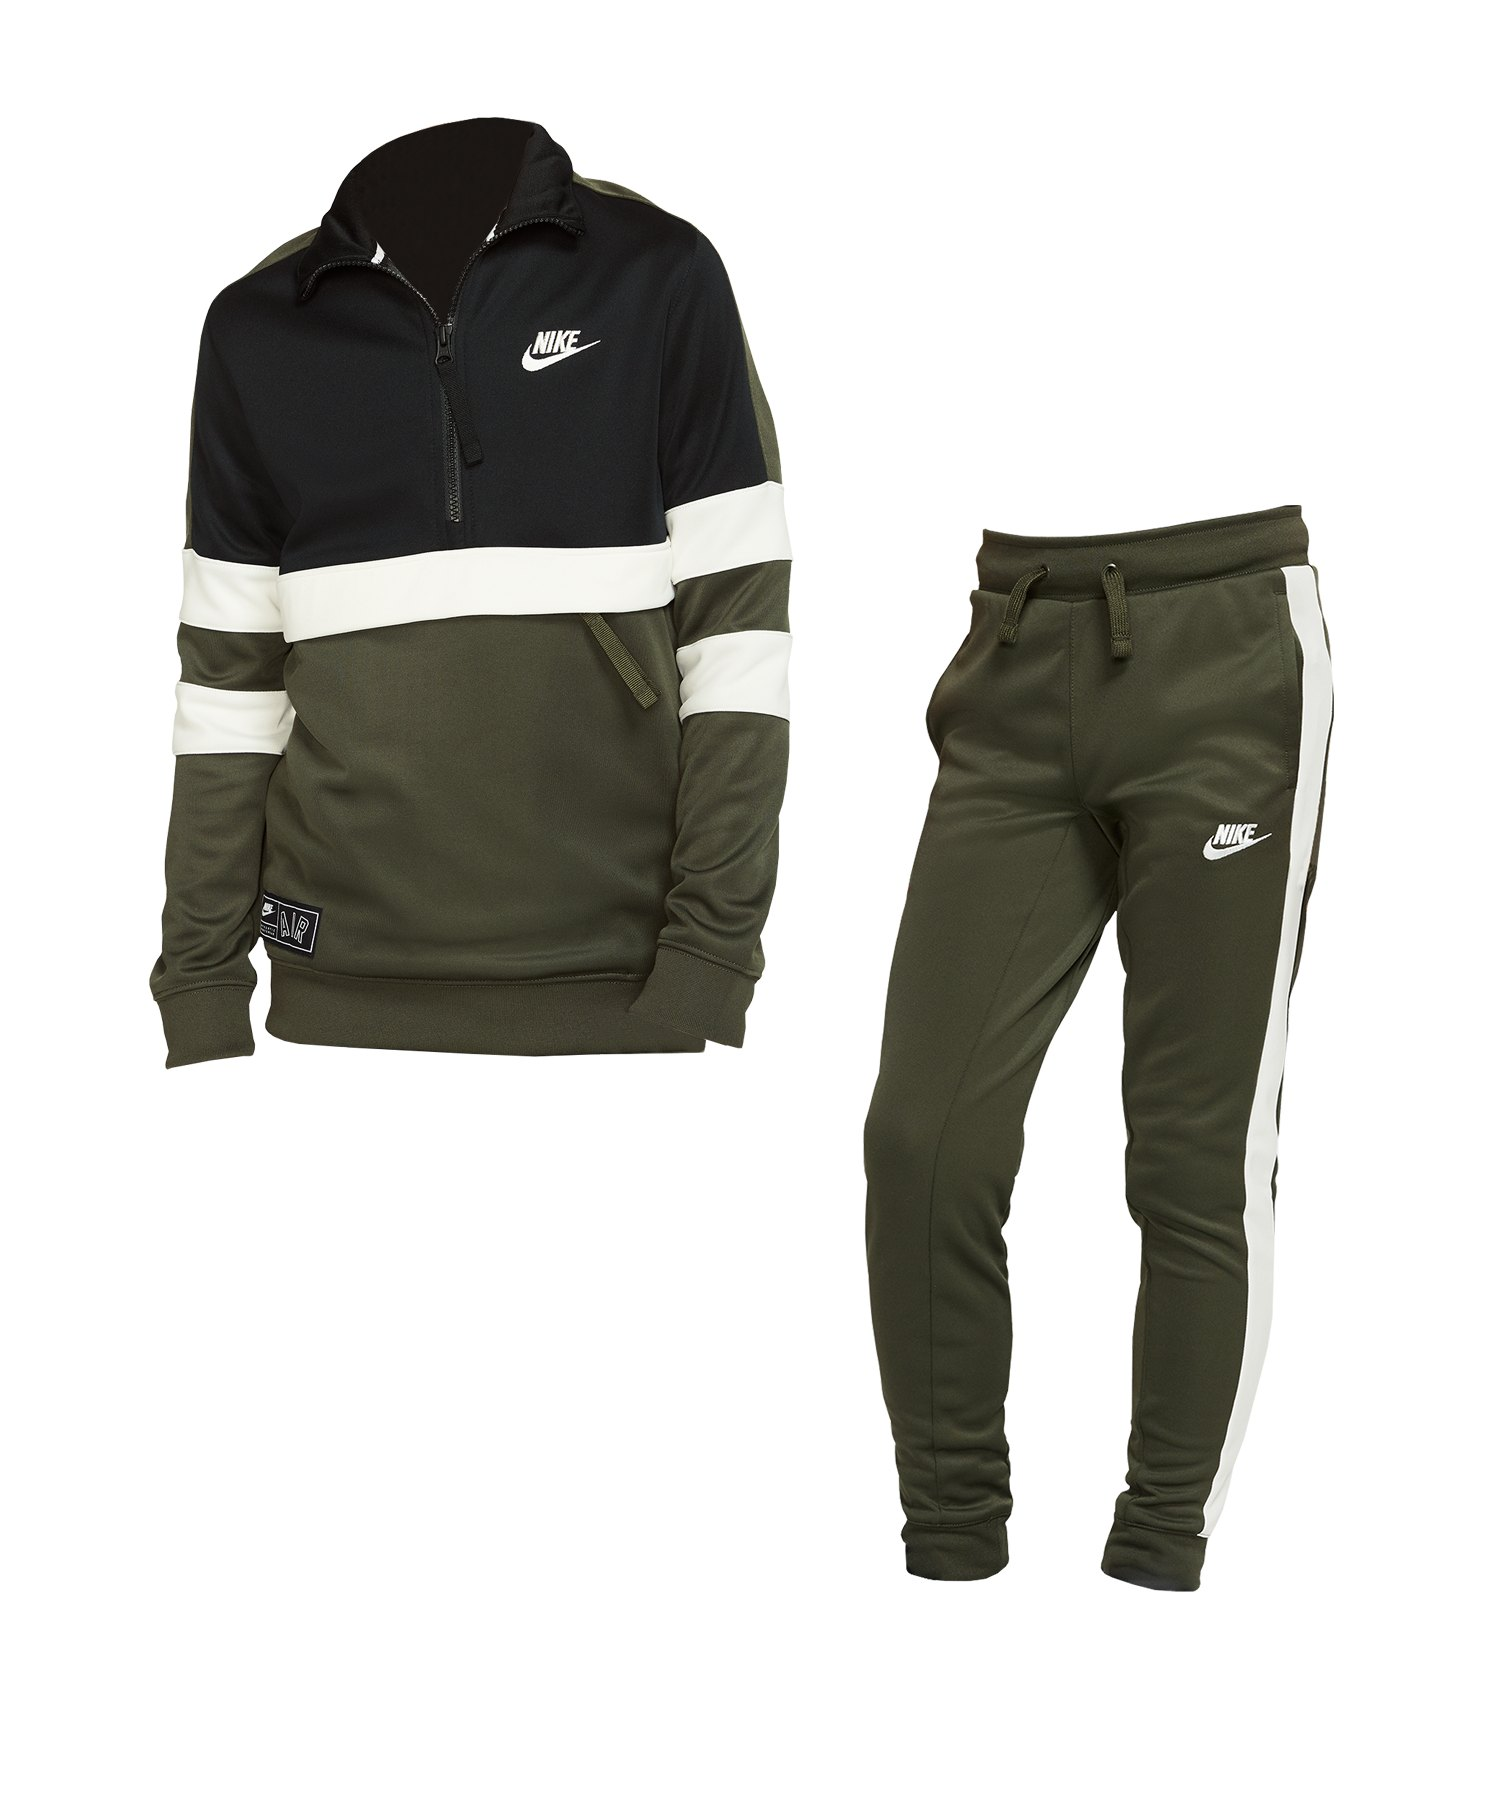 reputable site 5bf31 6b055 Nike Air Track Suit Anzug Kids Grün F325